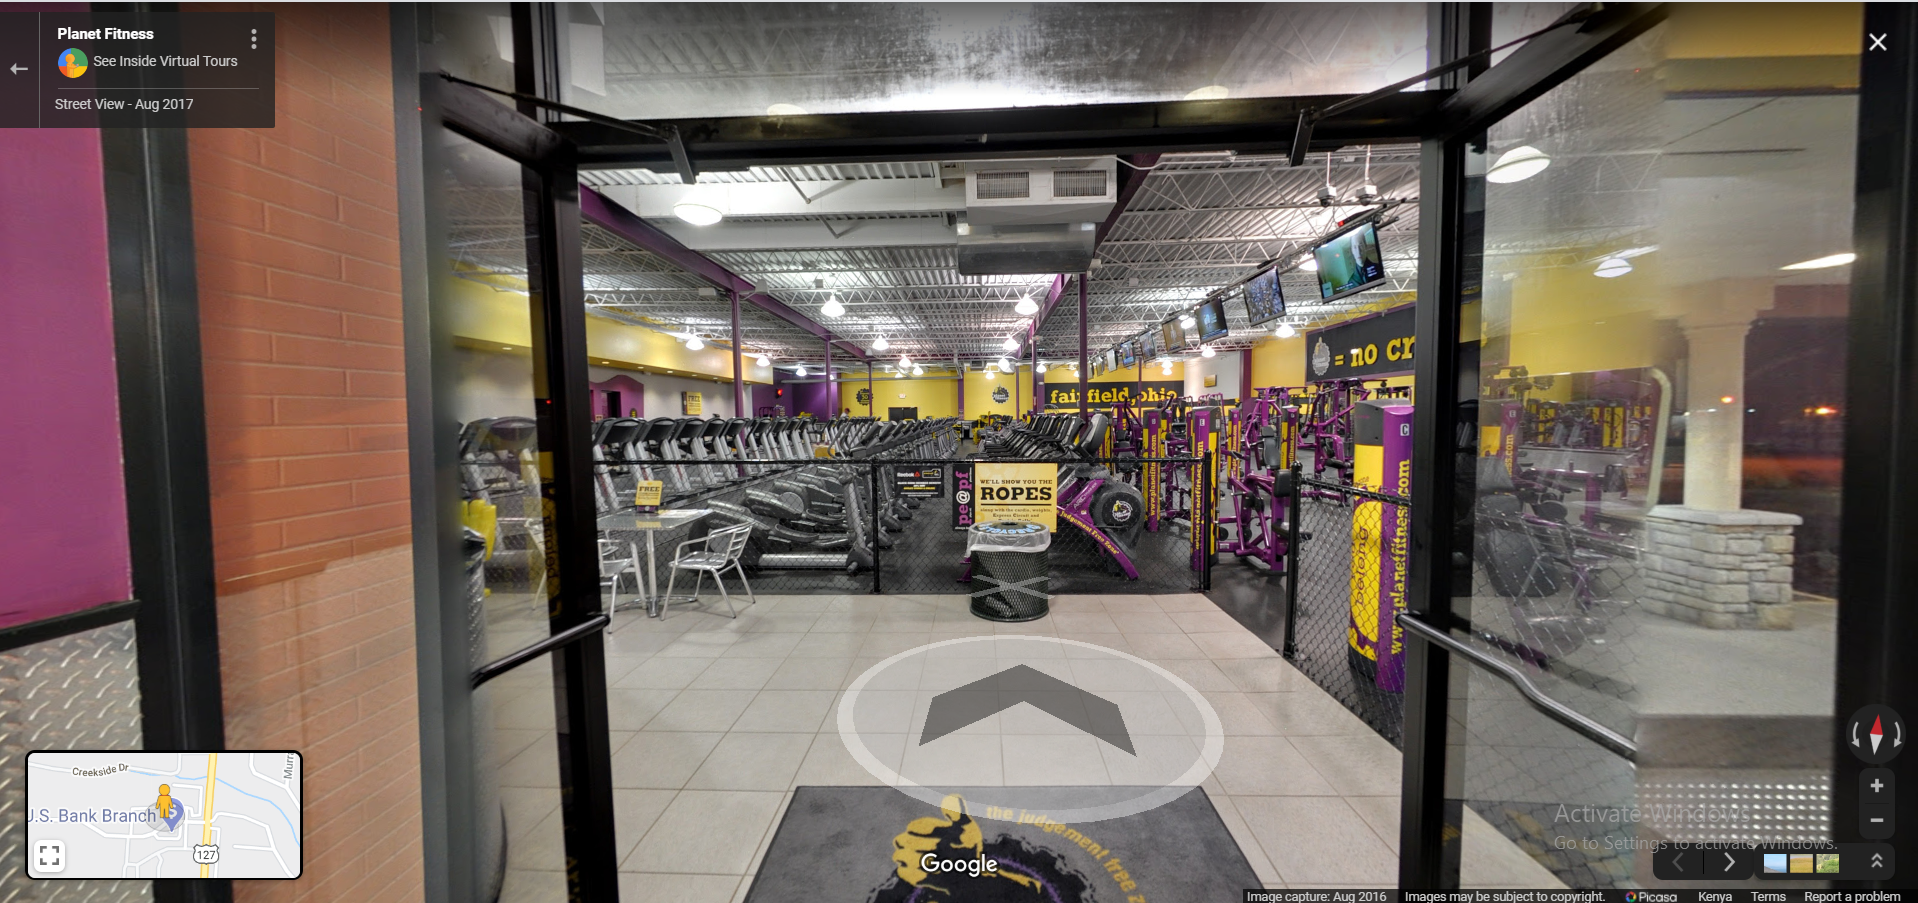 Planet Fitness Fairfield